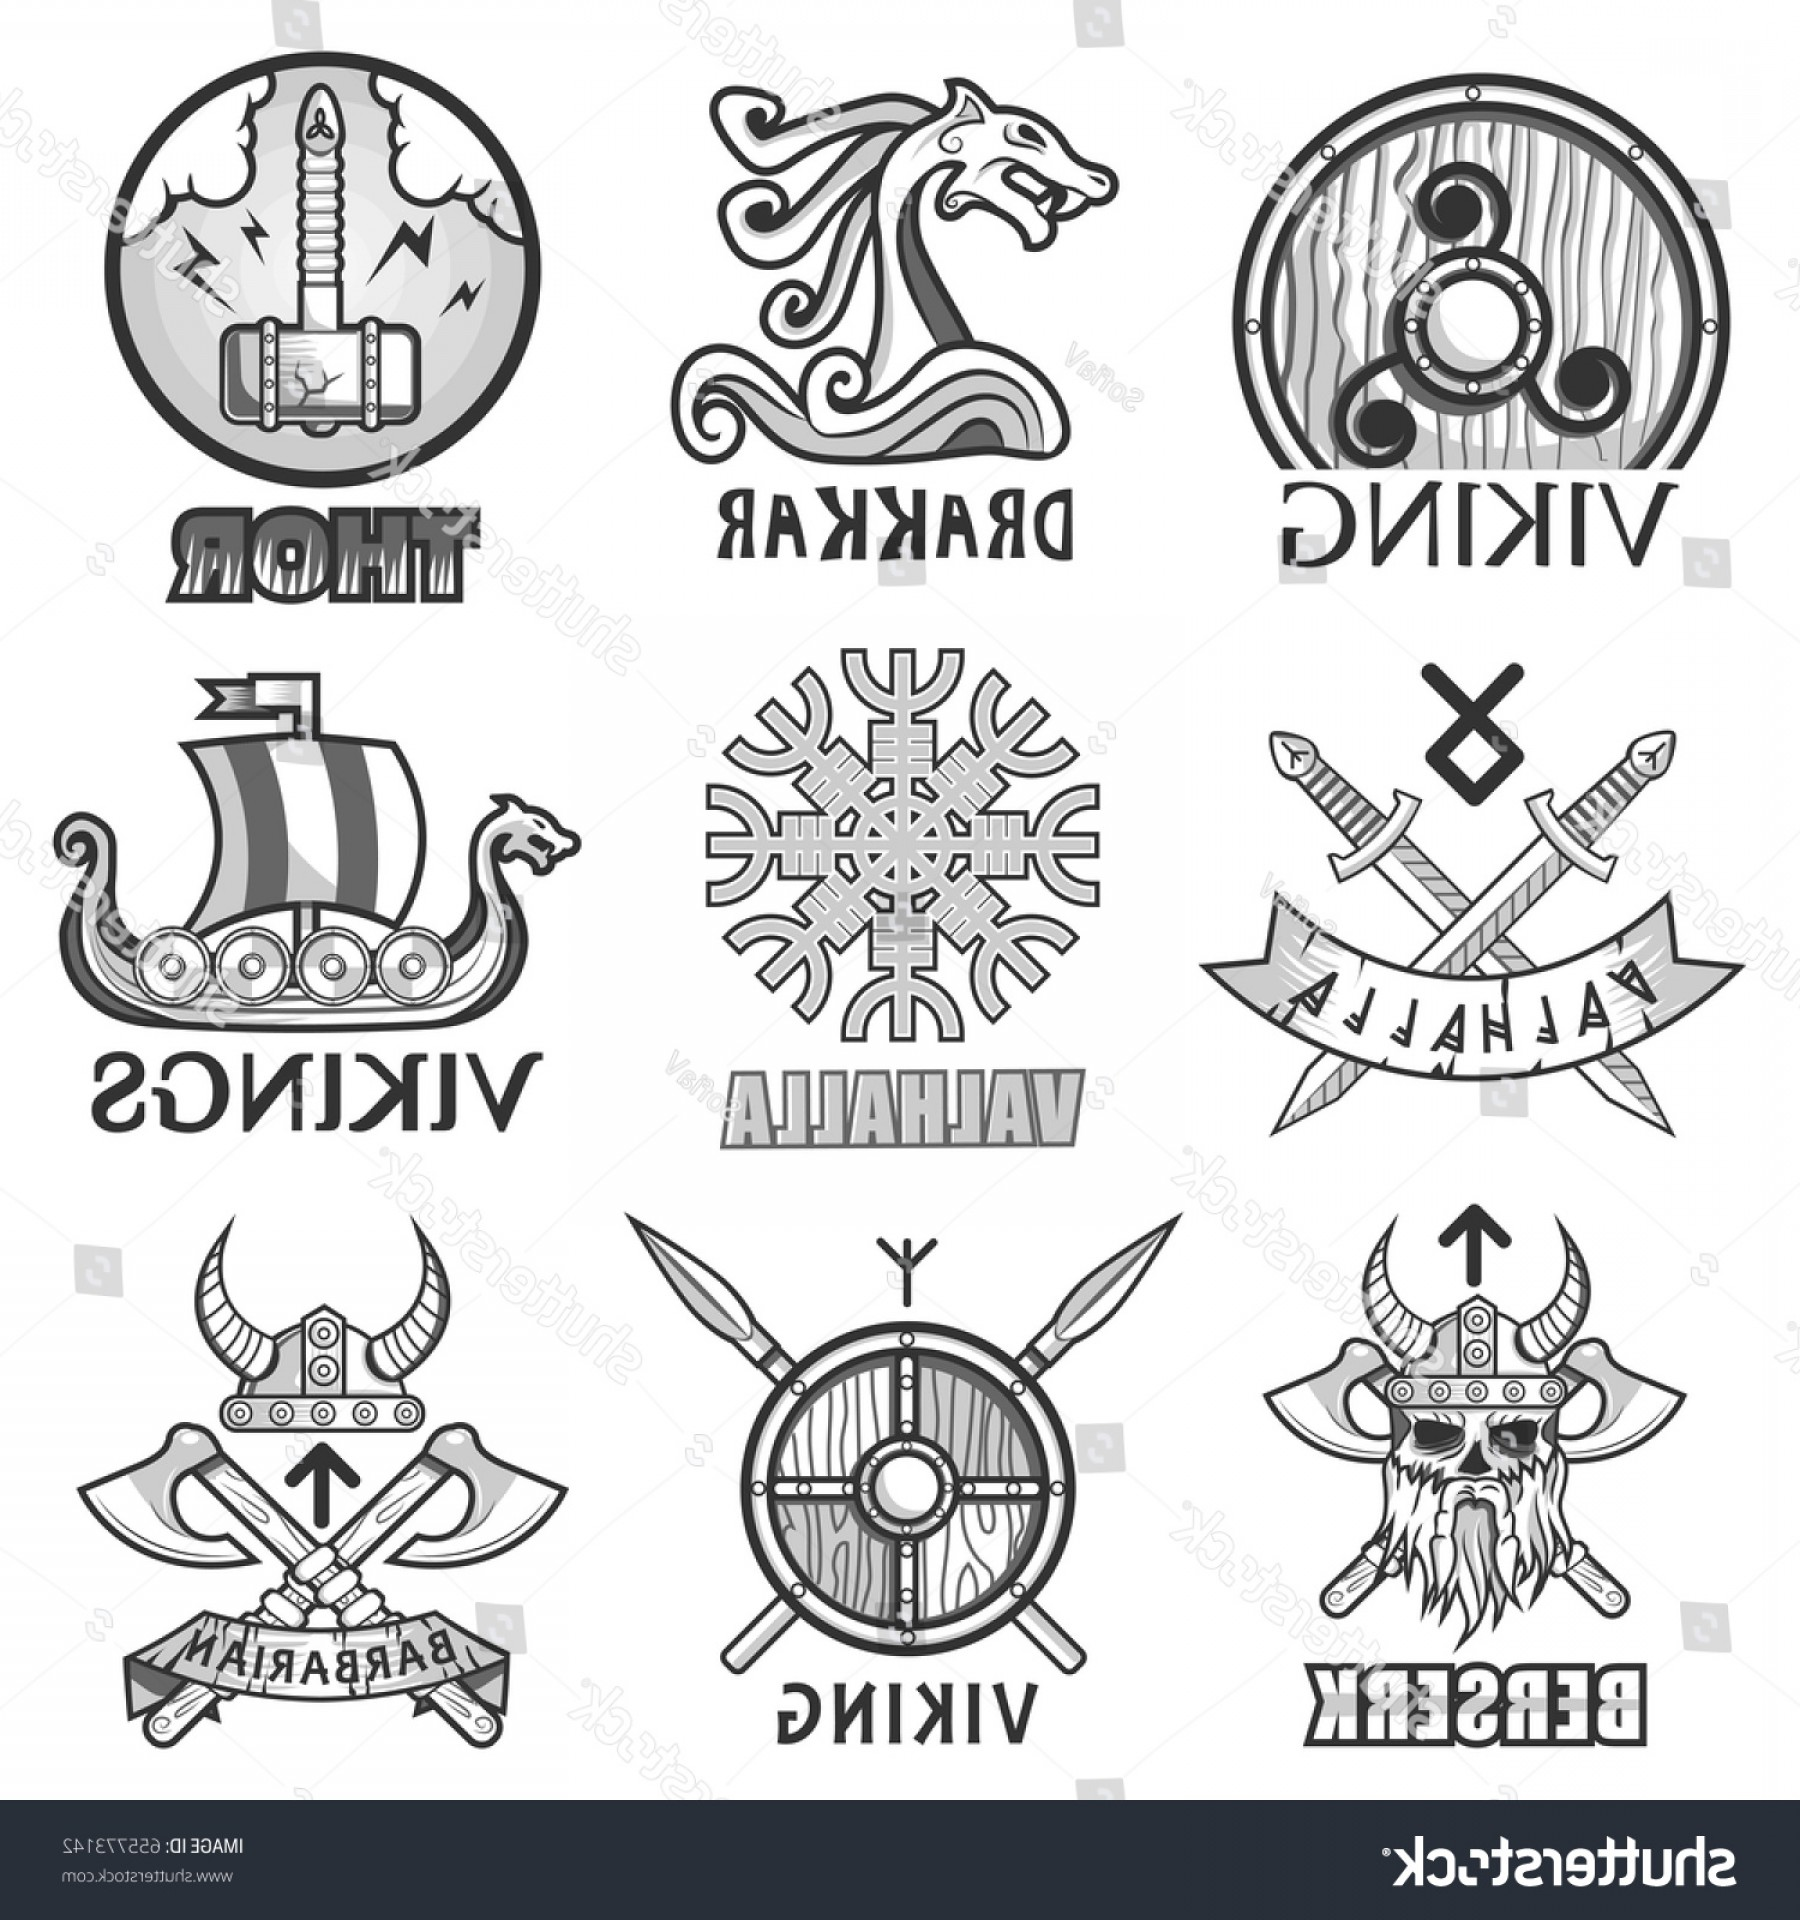 Warrior Thin Blue Line Vector: Viking Scandinavian Ancient Warriors Ship Arms